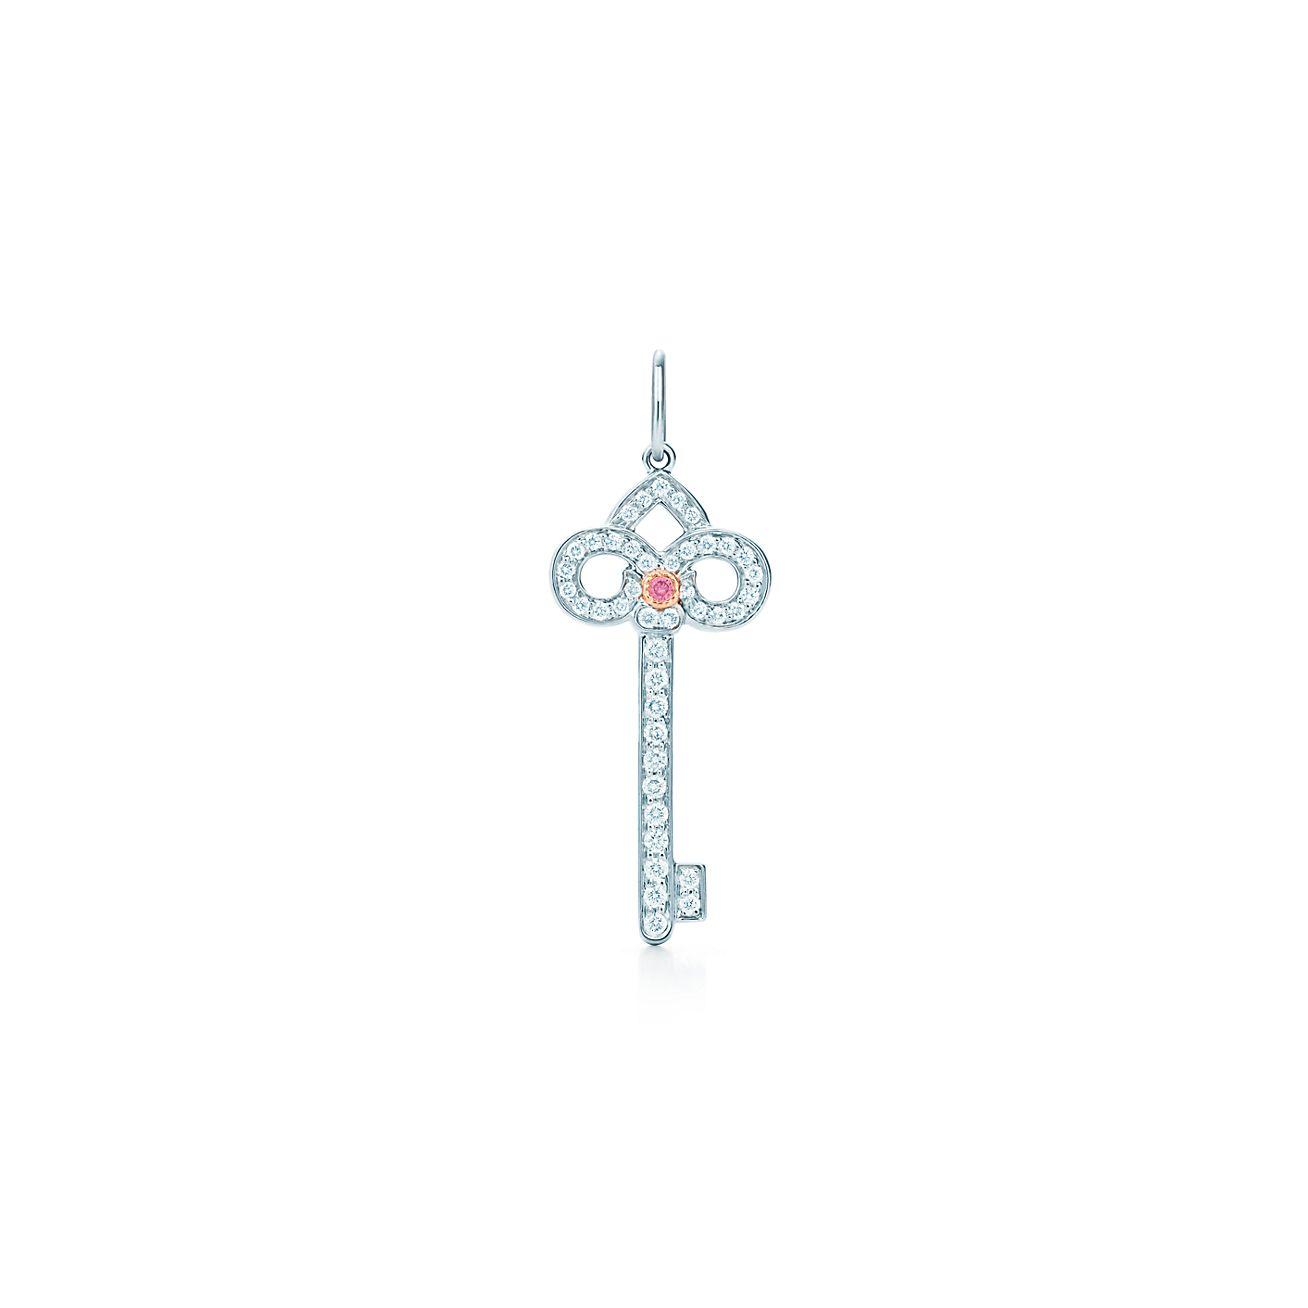 Tiffany keys fleur de lis key pendant in platinum with a diamond tiffany keysfleur de lis key pendant aloadofball Gallery